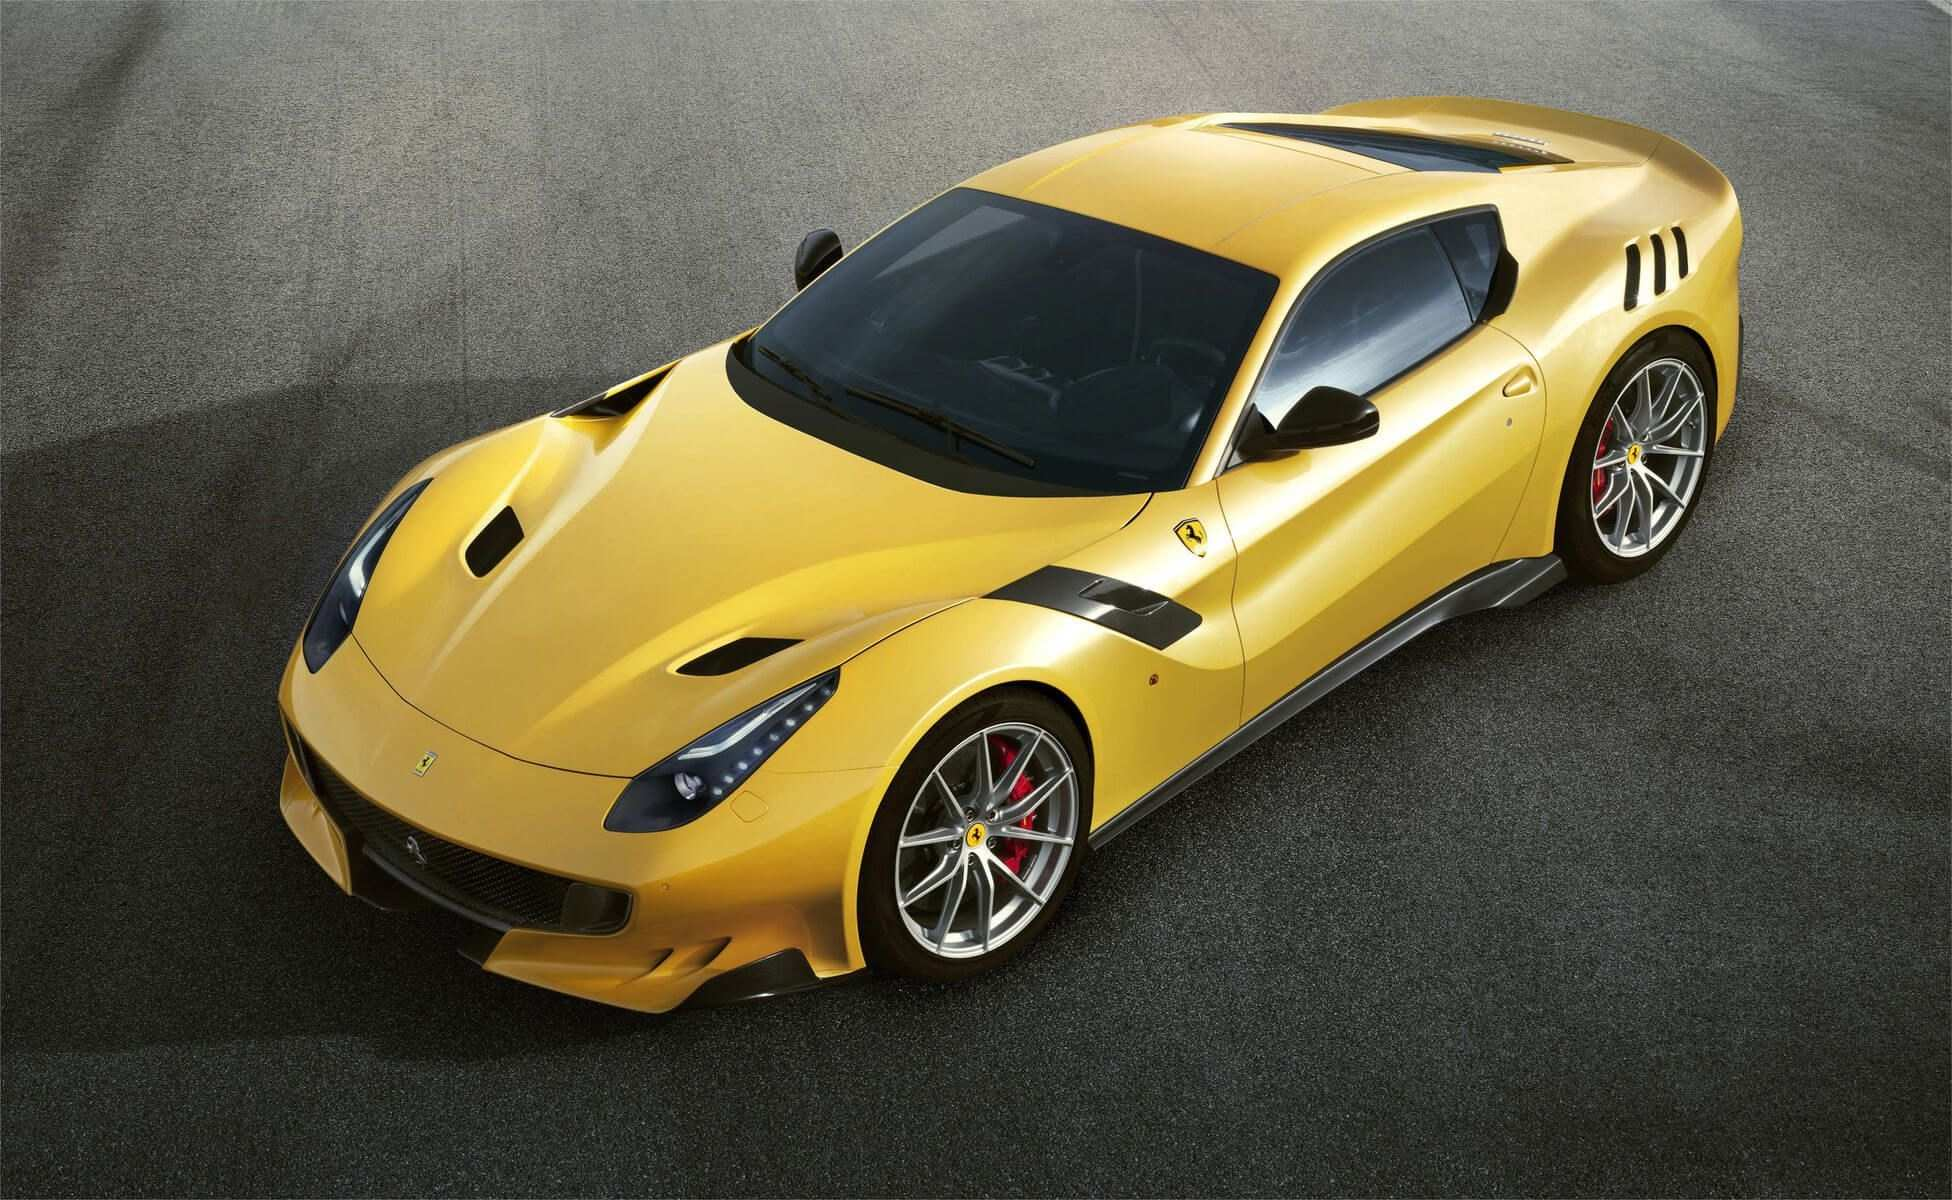 50 All New The La Nuova Ferrari 2019 First Drive Exterior and Interior with The La Nuova Ferrari 2019 First Drive